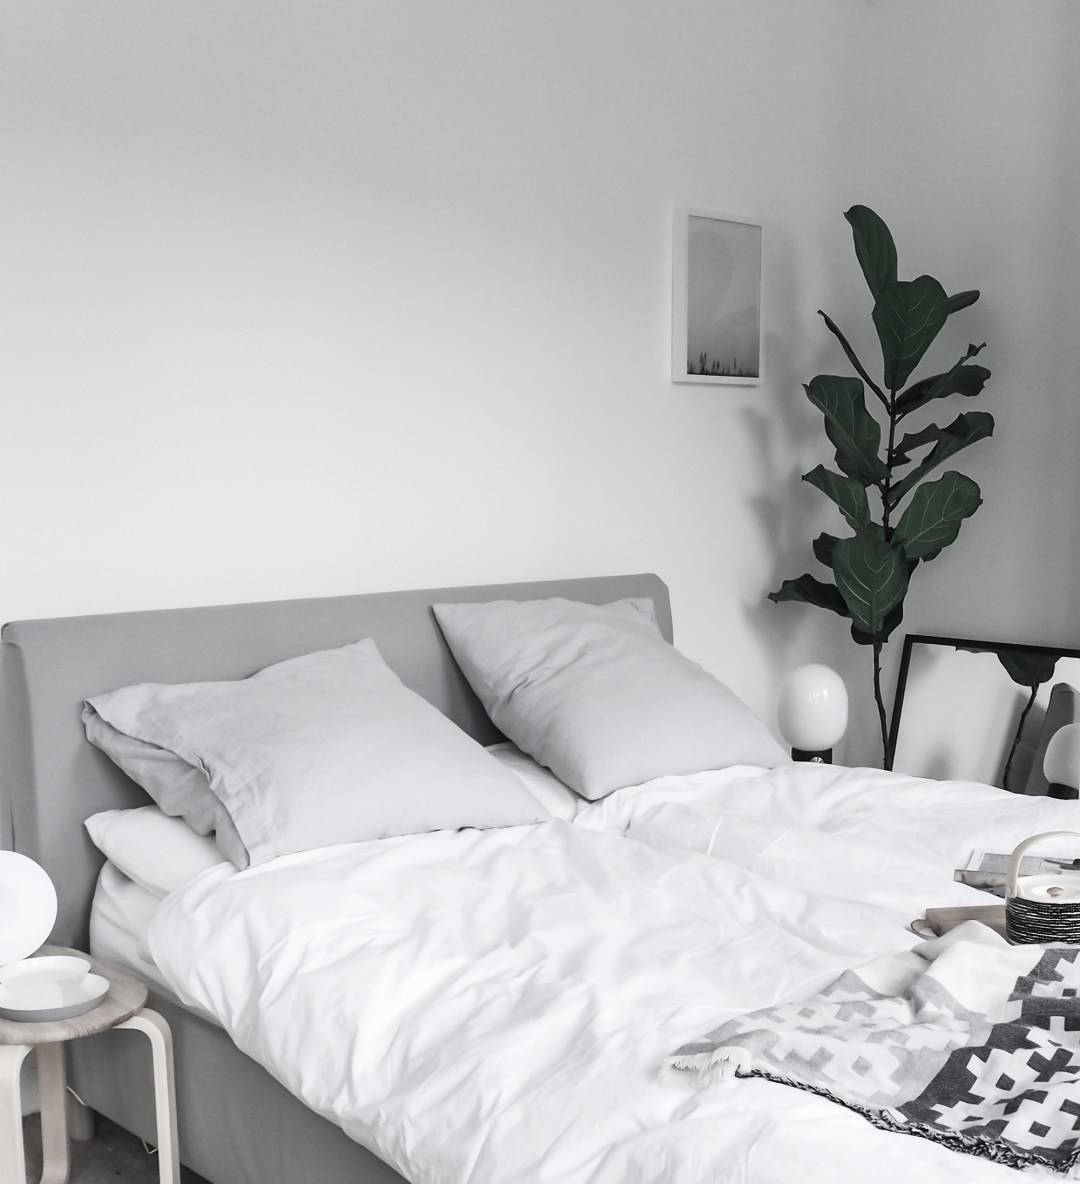 Eve Sleep | Sleep the Scandinavian way, Hannah in the house